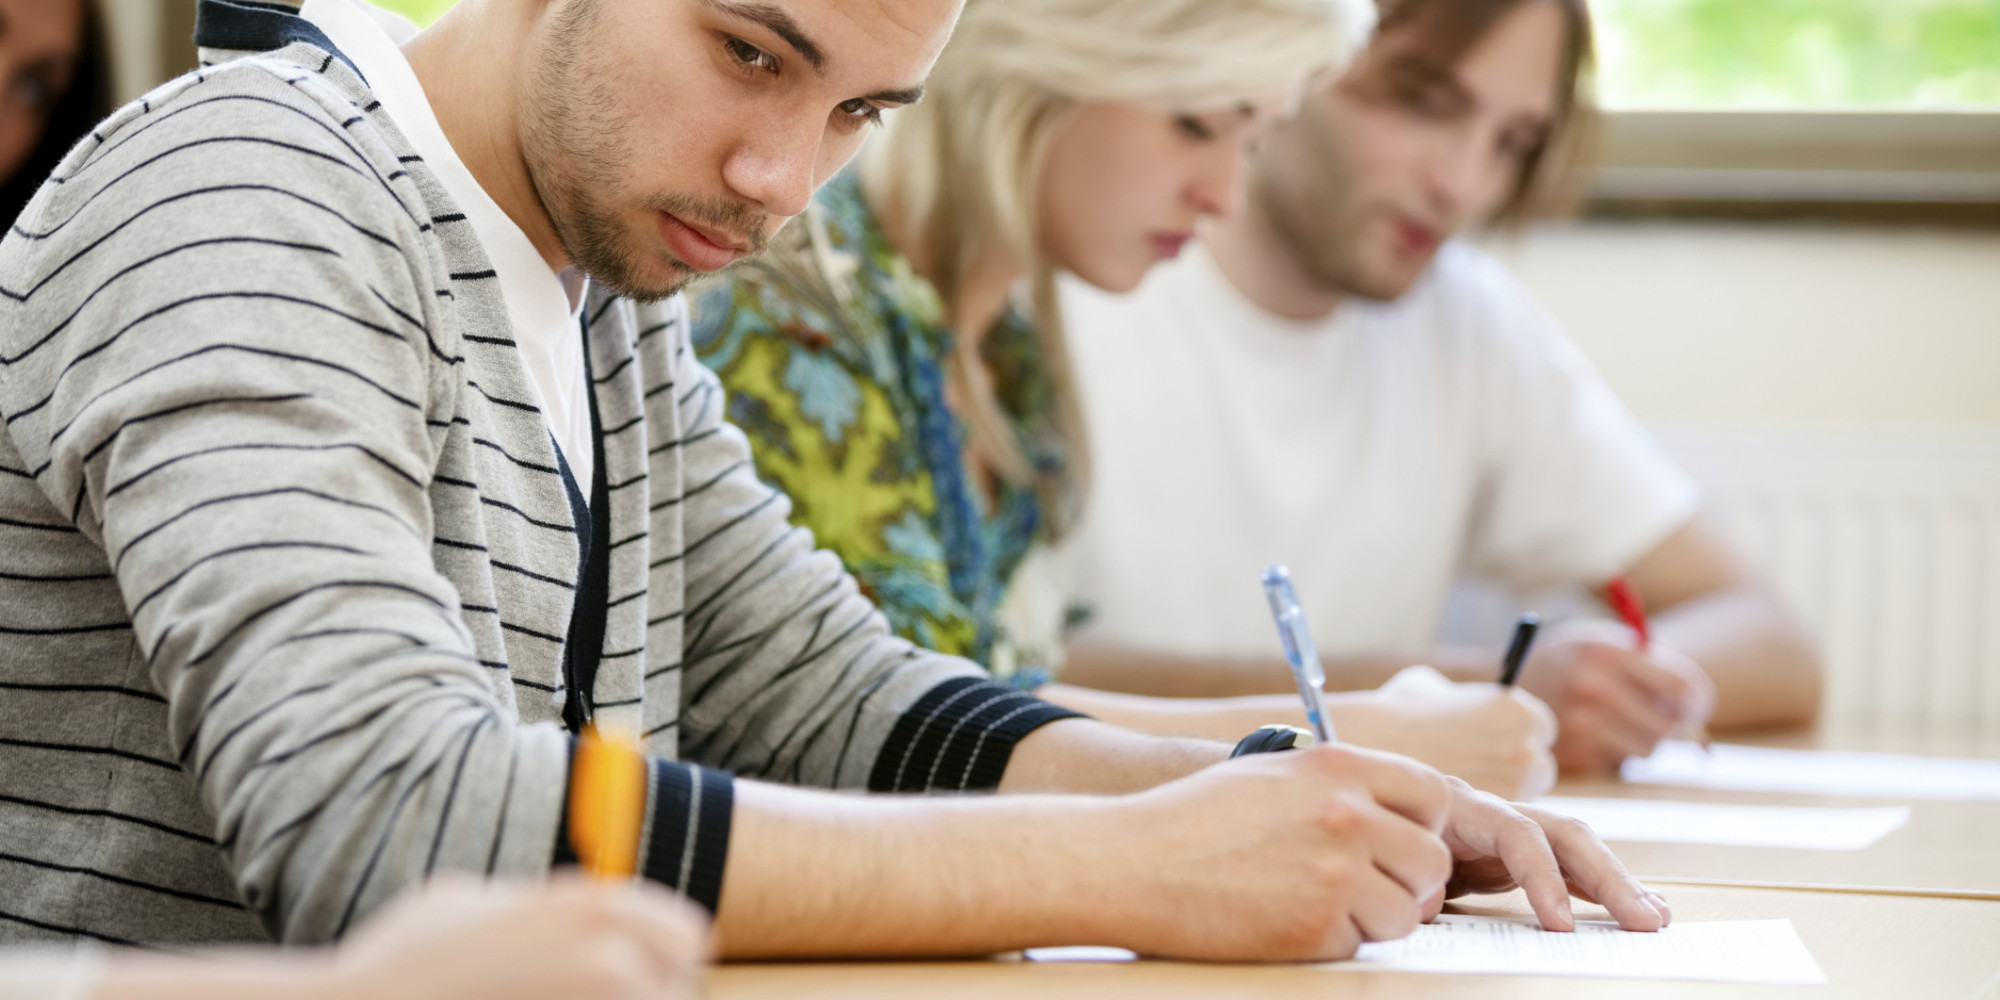 consequences of a college student cheating on exams essay